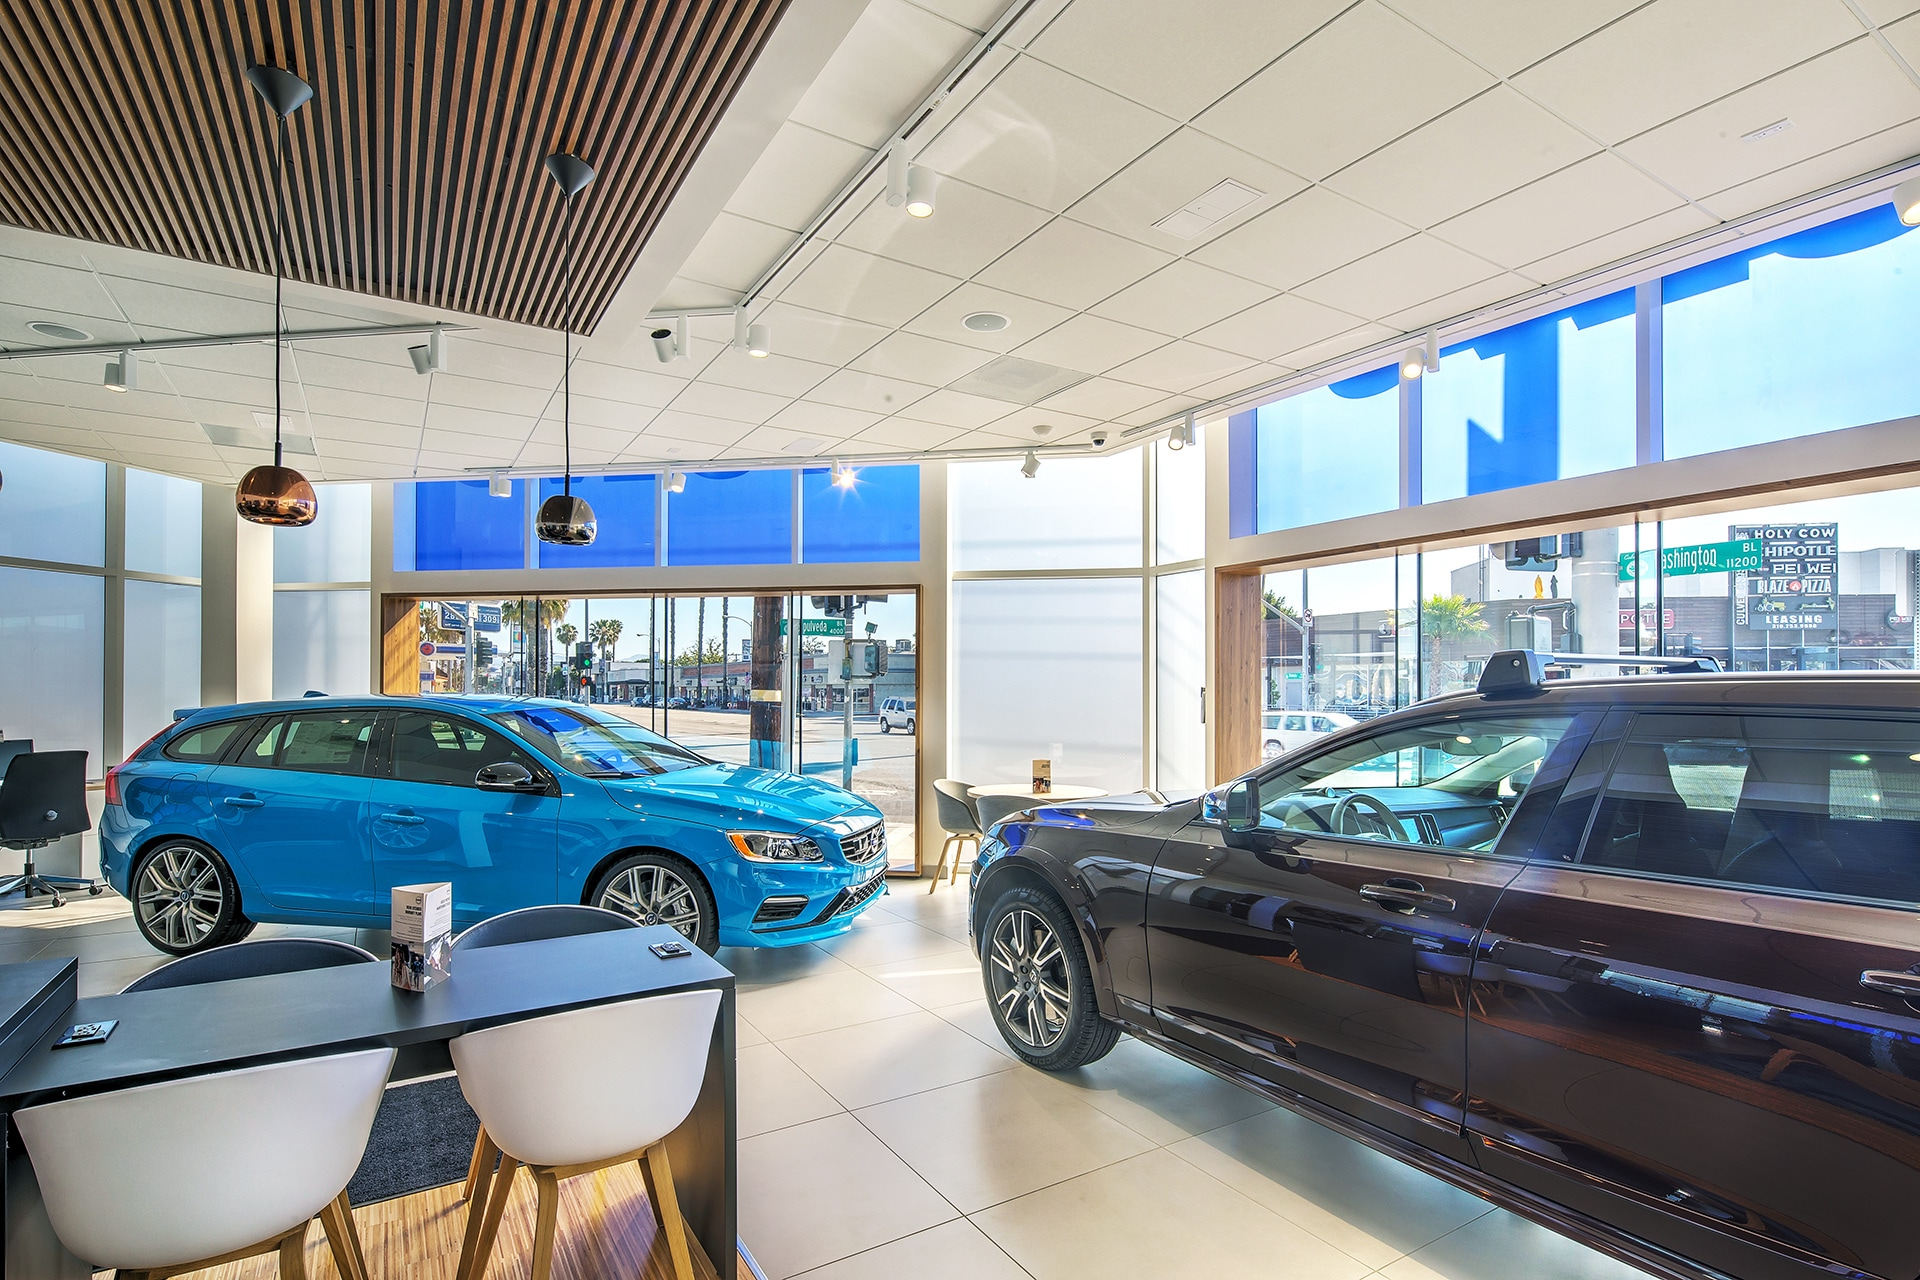 View new cars and wait comfortably with snacks and wifi in our Remodeled showroom at Culver City Volvo Cars